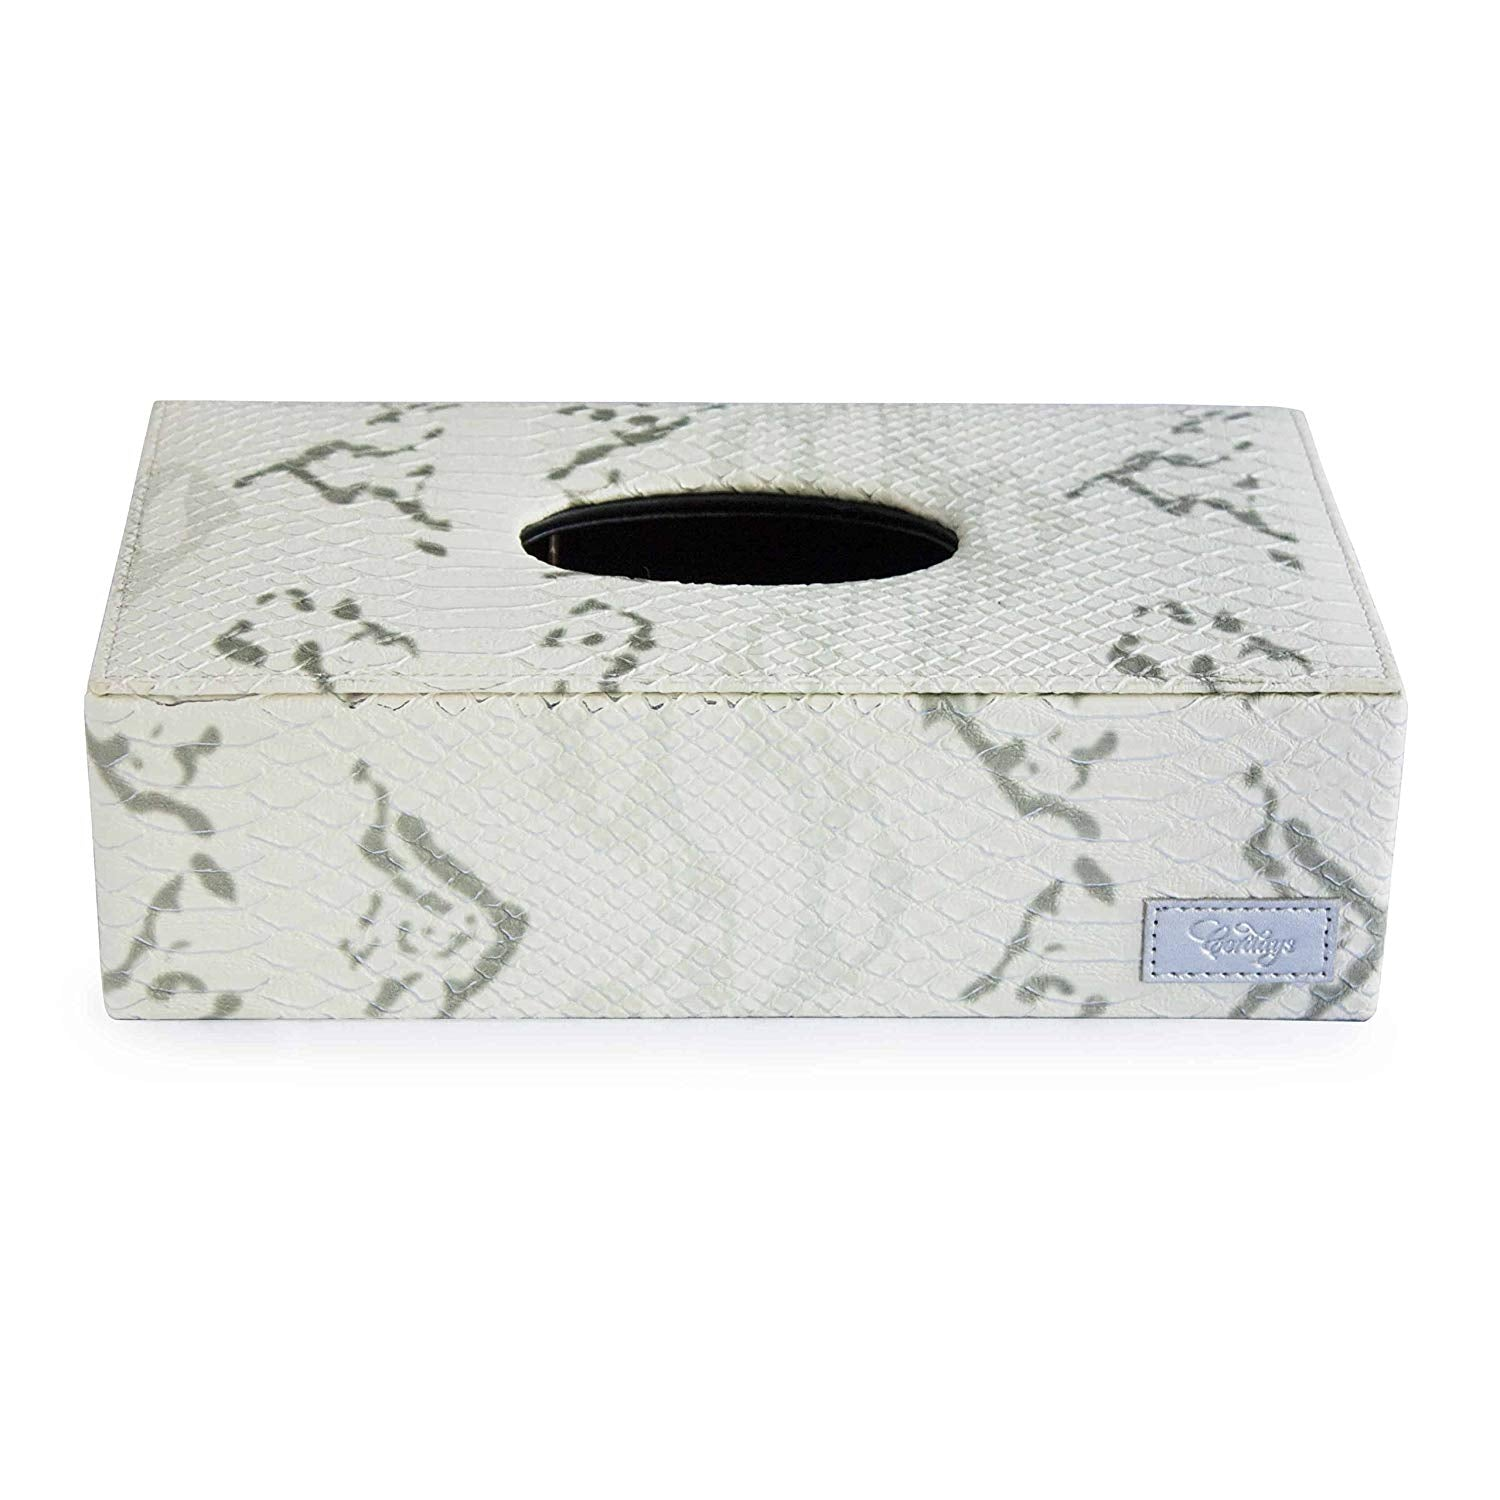 Tissue Box Cover in Ivory Textured Leatherette